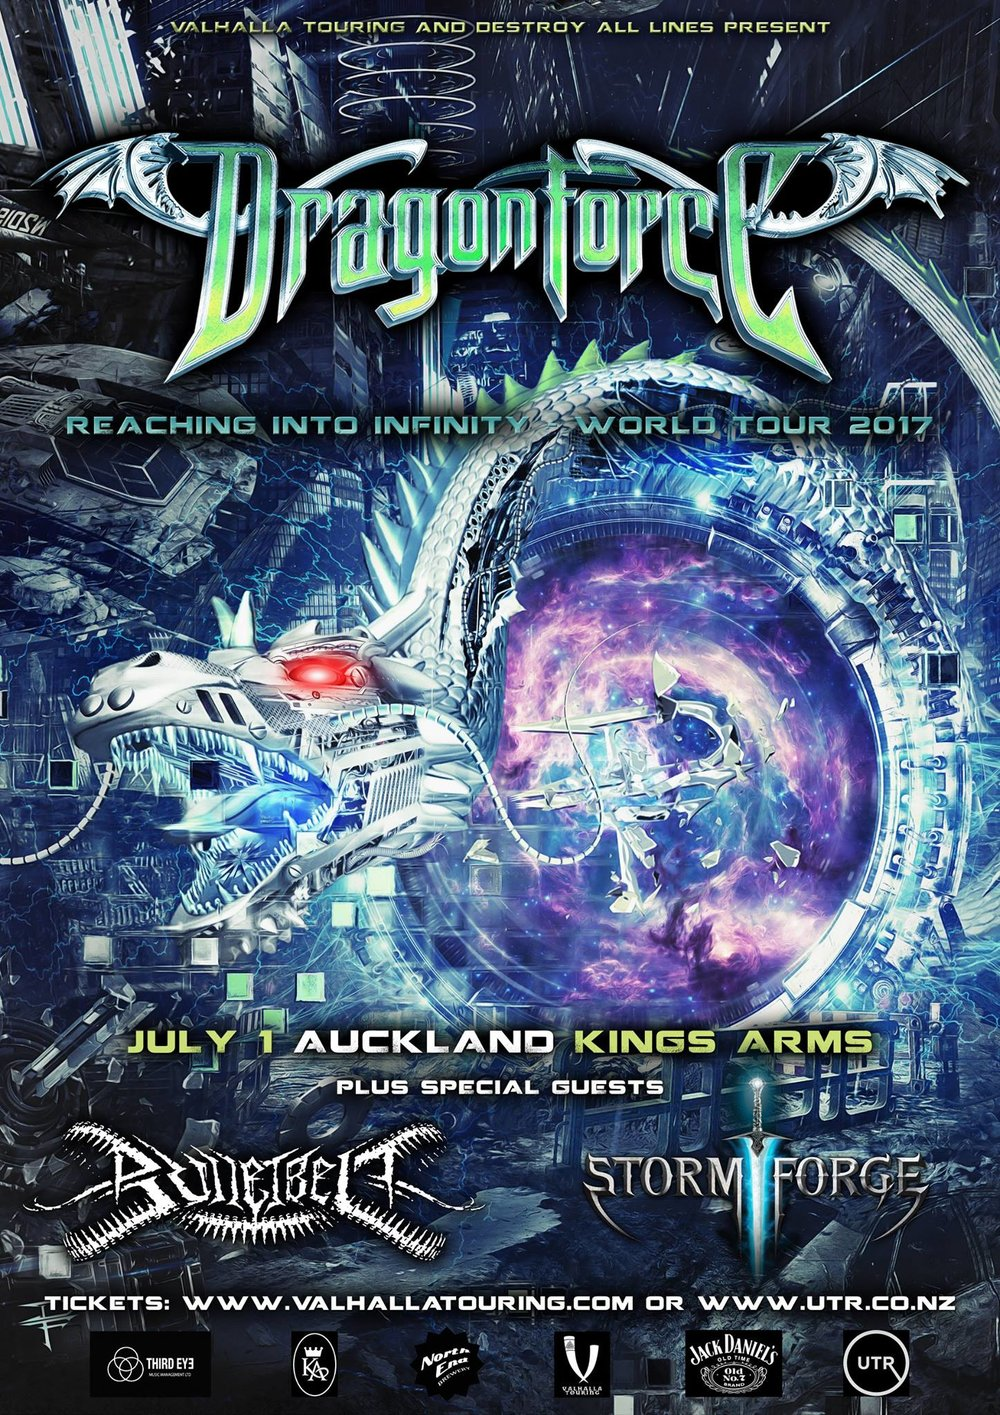 DRAGONFORCE - International metal superstars and power metal speed legends DRAGONFORCE have revealed that they will be touring New Zealand as part of their Reaching Into Infinity World Tour.